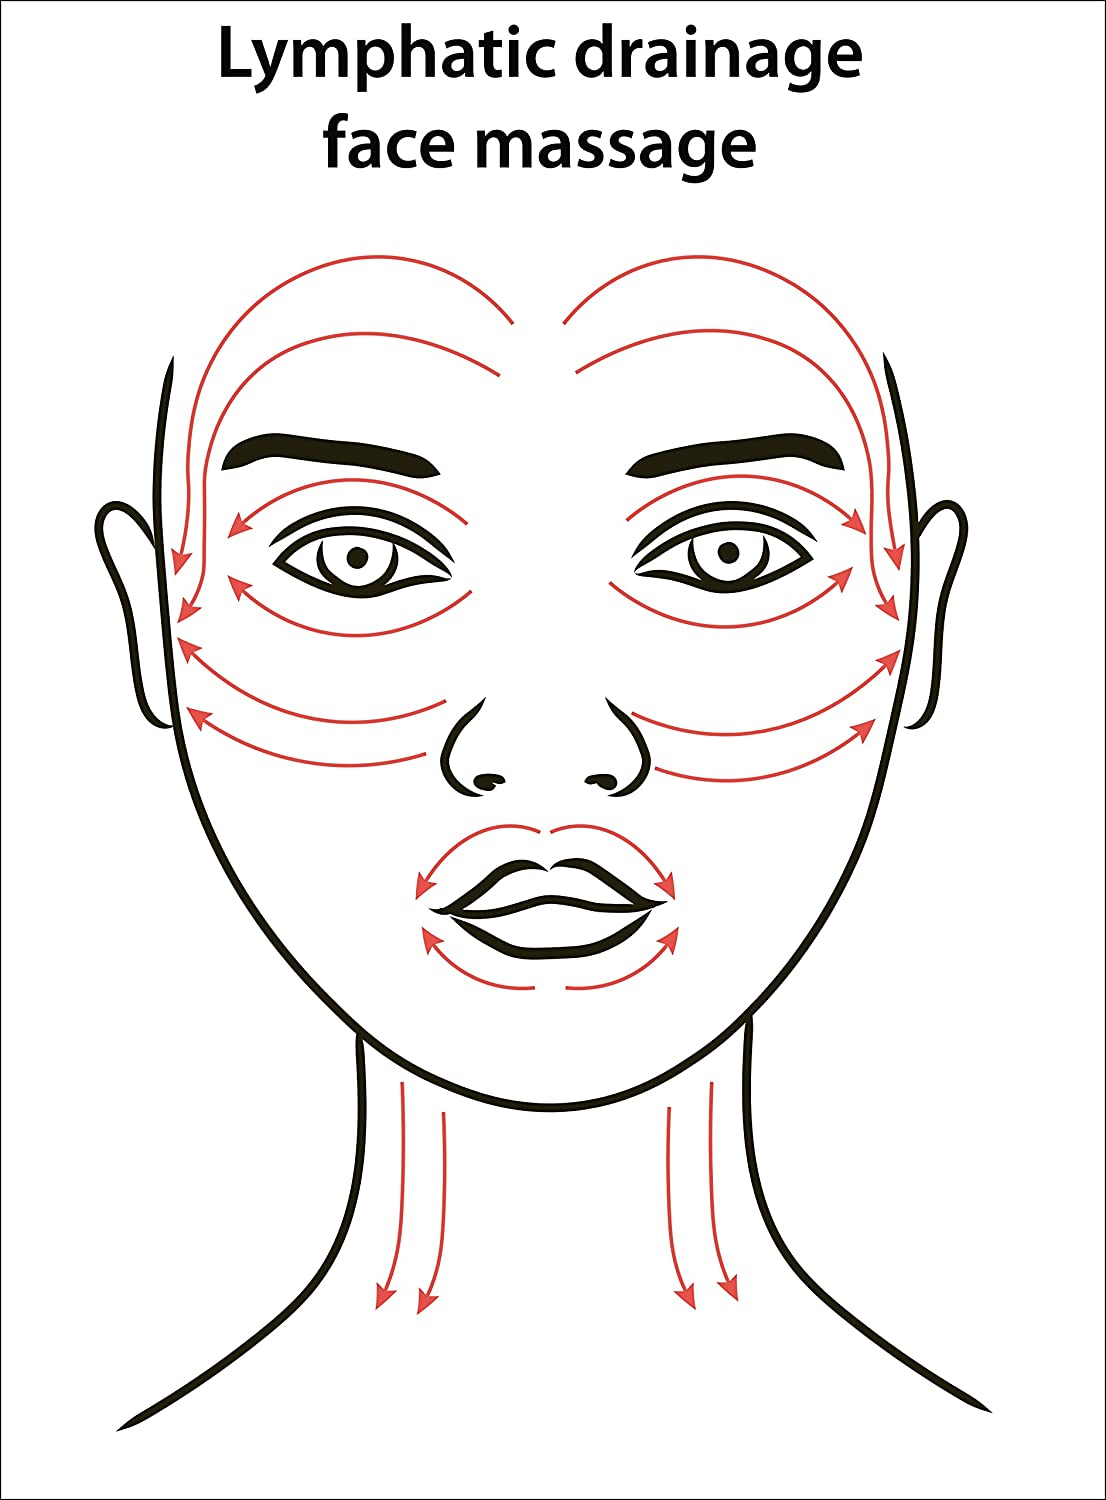 lymphatic drainage massage face